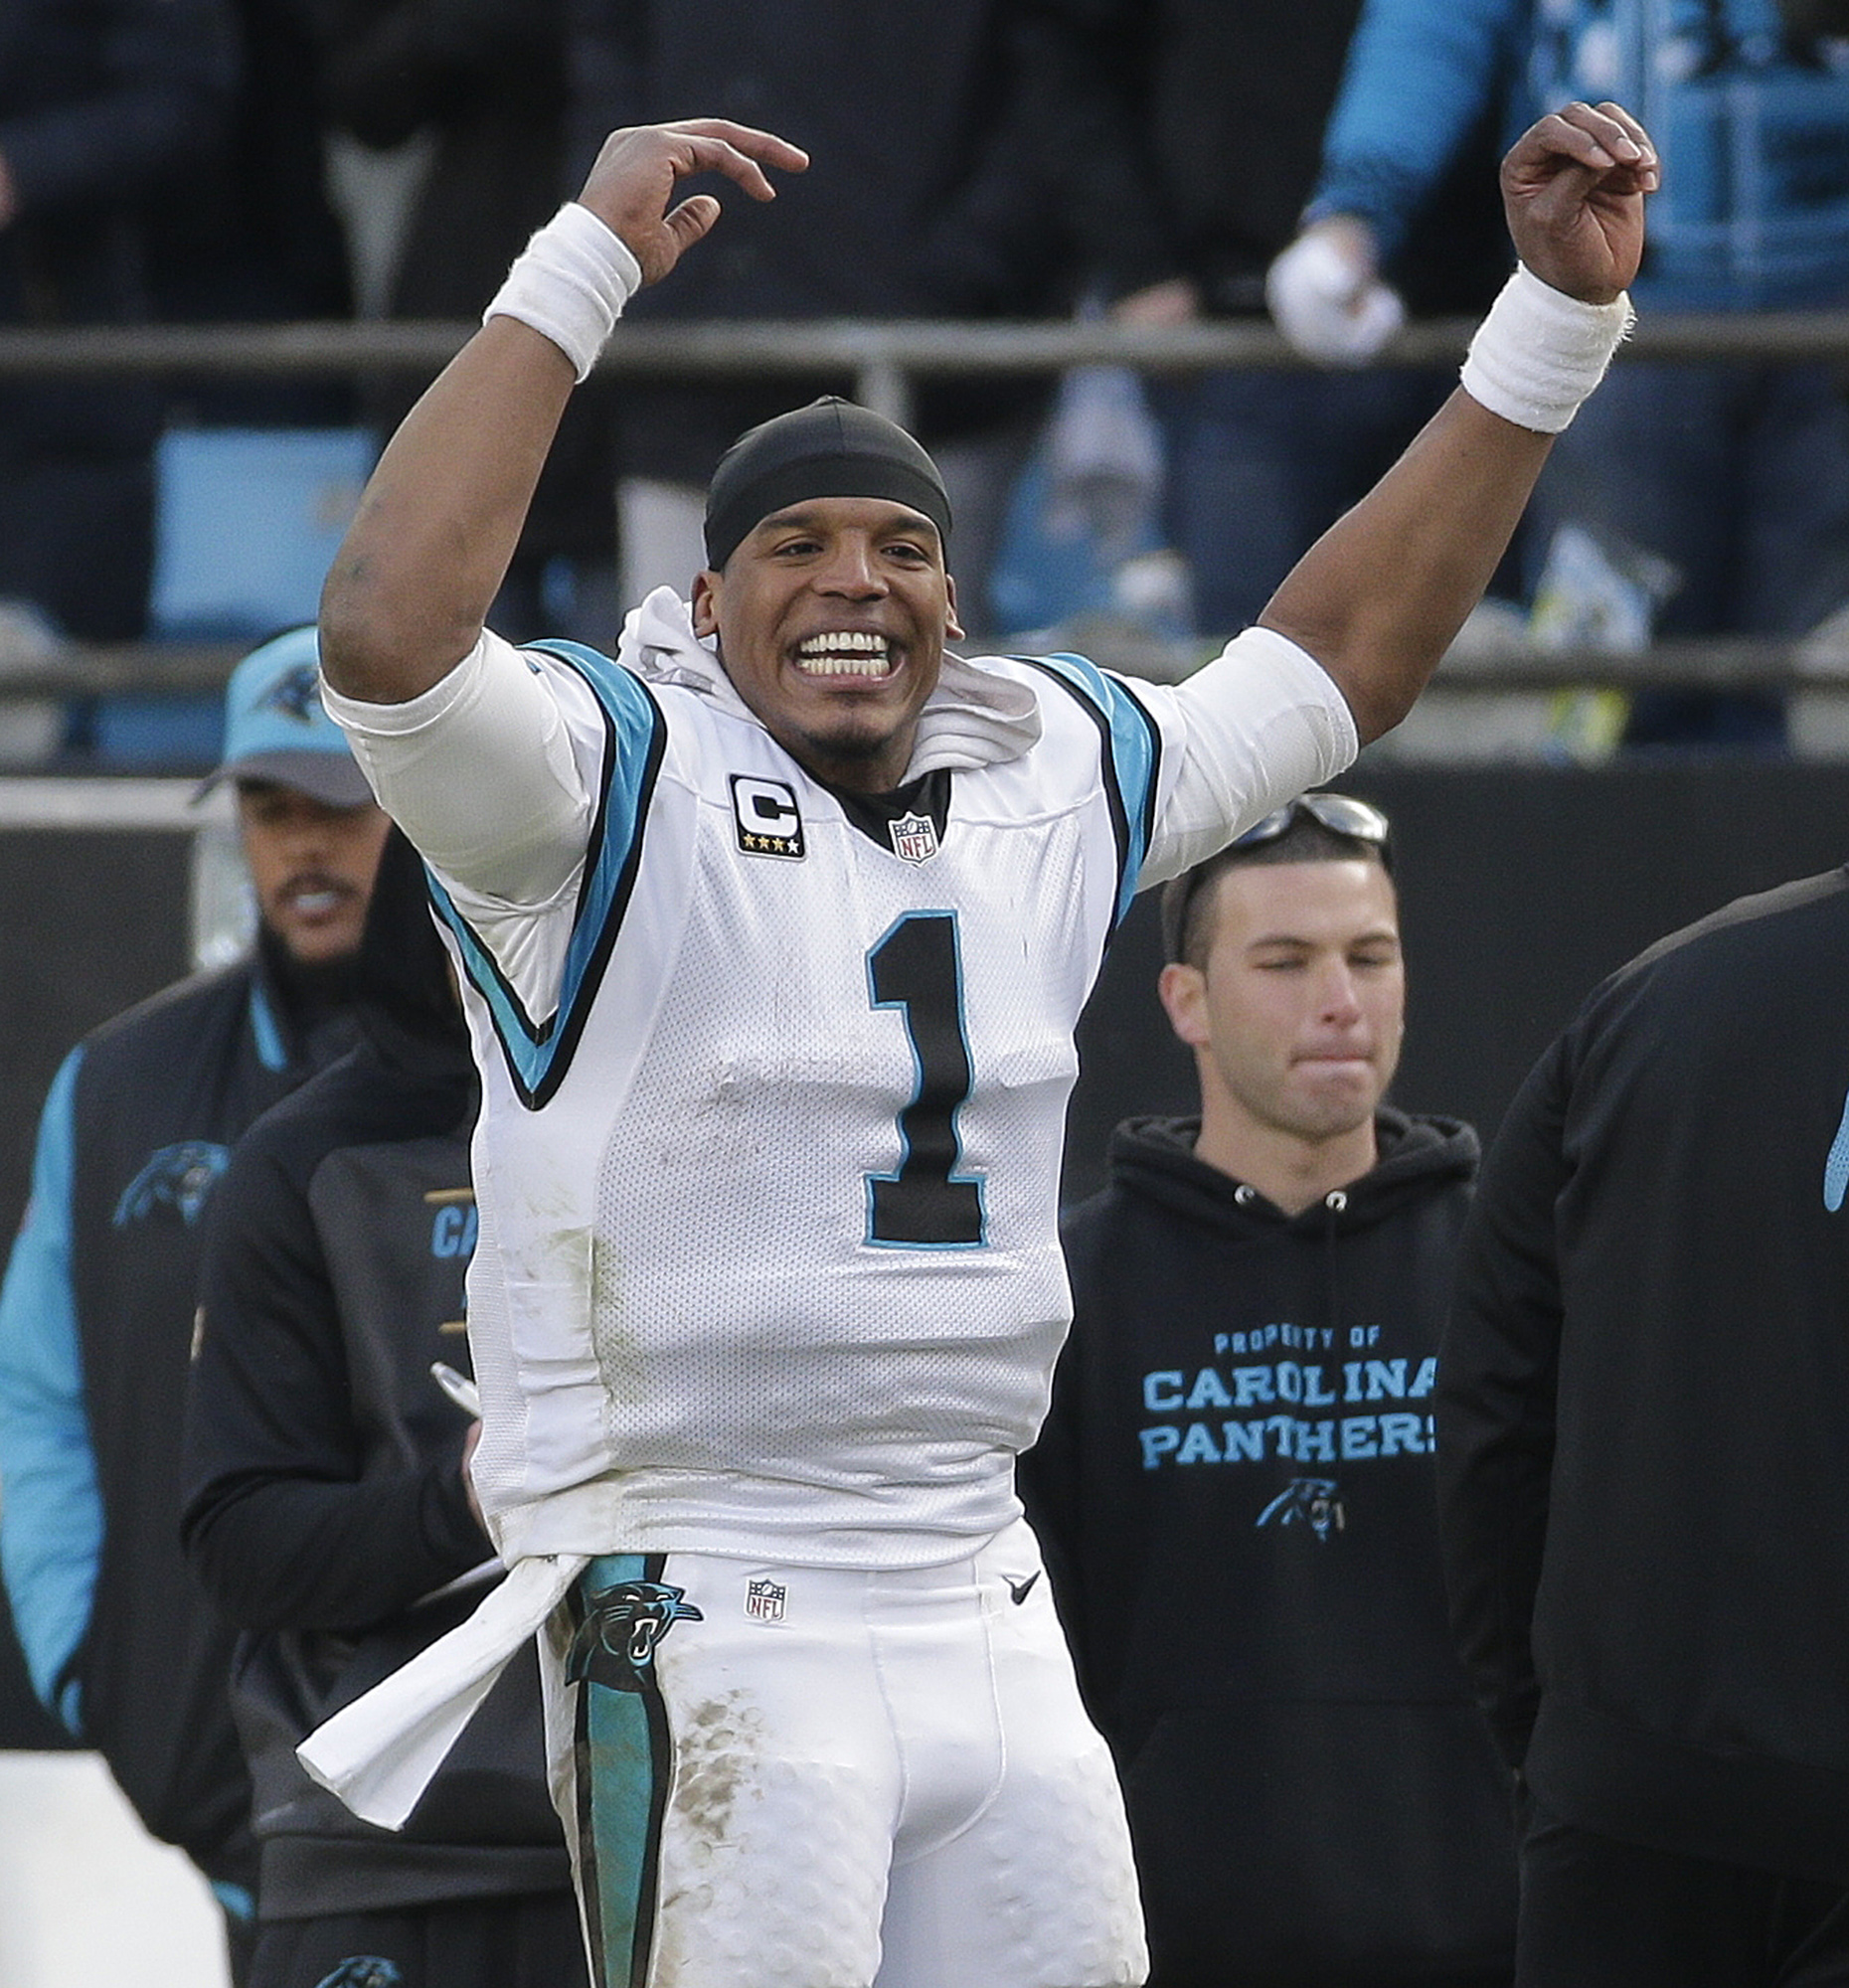 Carolina Panthers quarterback Cam Newton (1) cheers on the sidelines during the second half of an NFL divisional playoff football game against the Seattle Seahawks, Sunday, Jan. 17, 2016, in Charlotte, N.C. The Carolina Panthers won 31-24.(AP Photo/Chuck